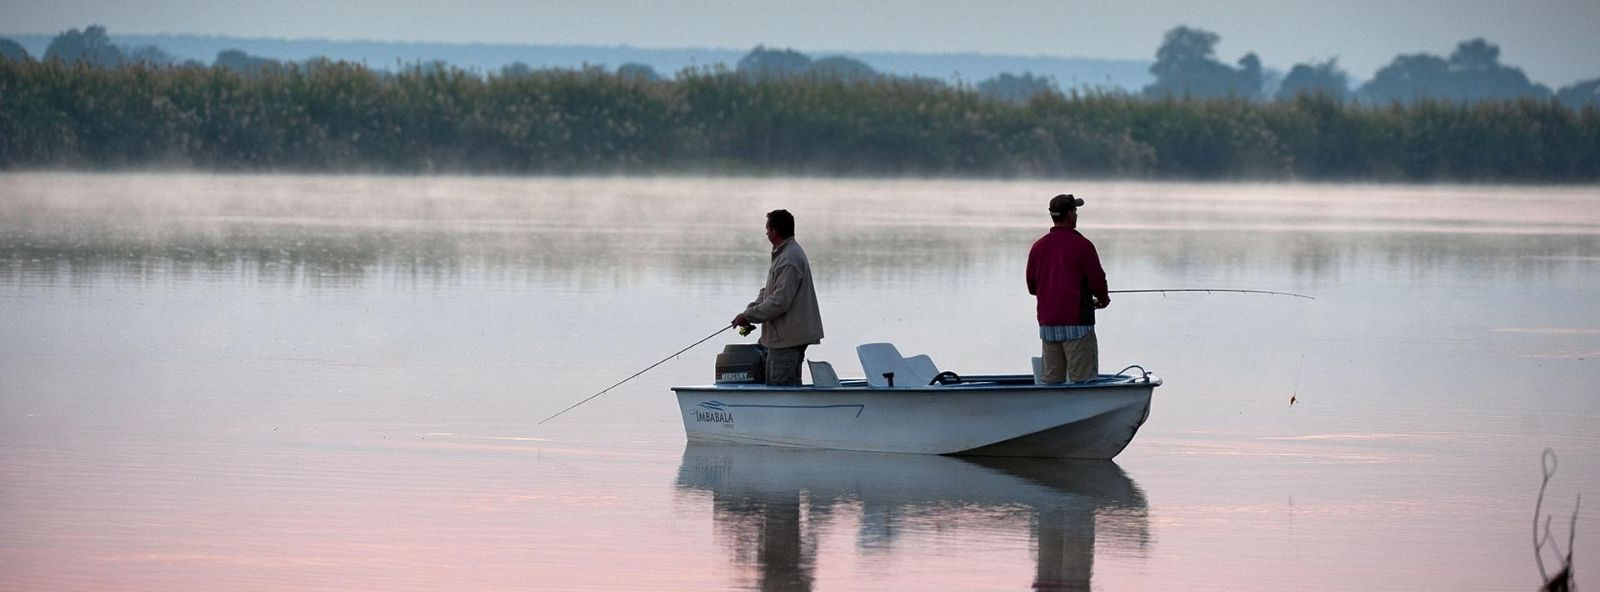 Chobe Fishing - two men in a small boat Tiger Fishing in the Chobe River